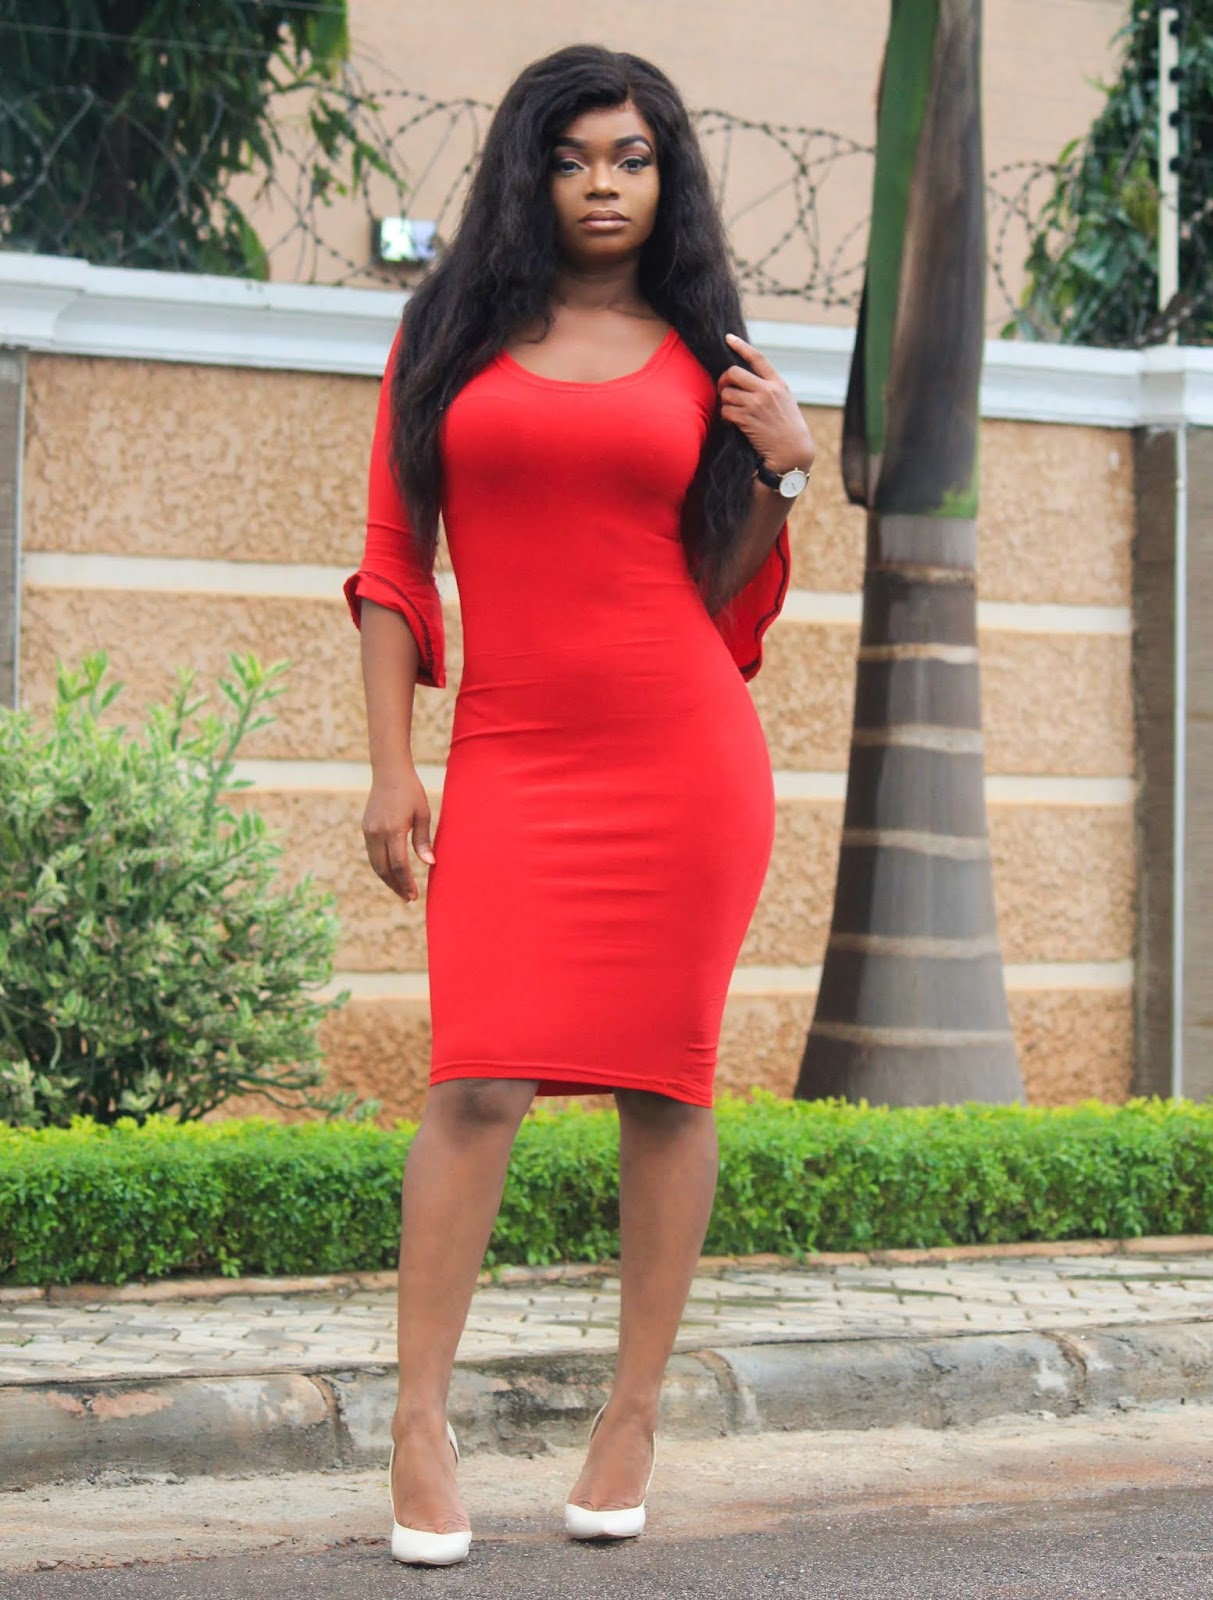 RED BODYCON DRESS - Red Bodycon Dress from Jumia with Boohoo Court Shoes